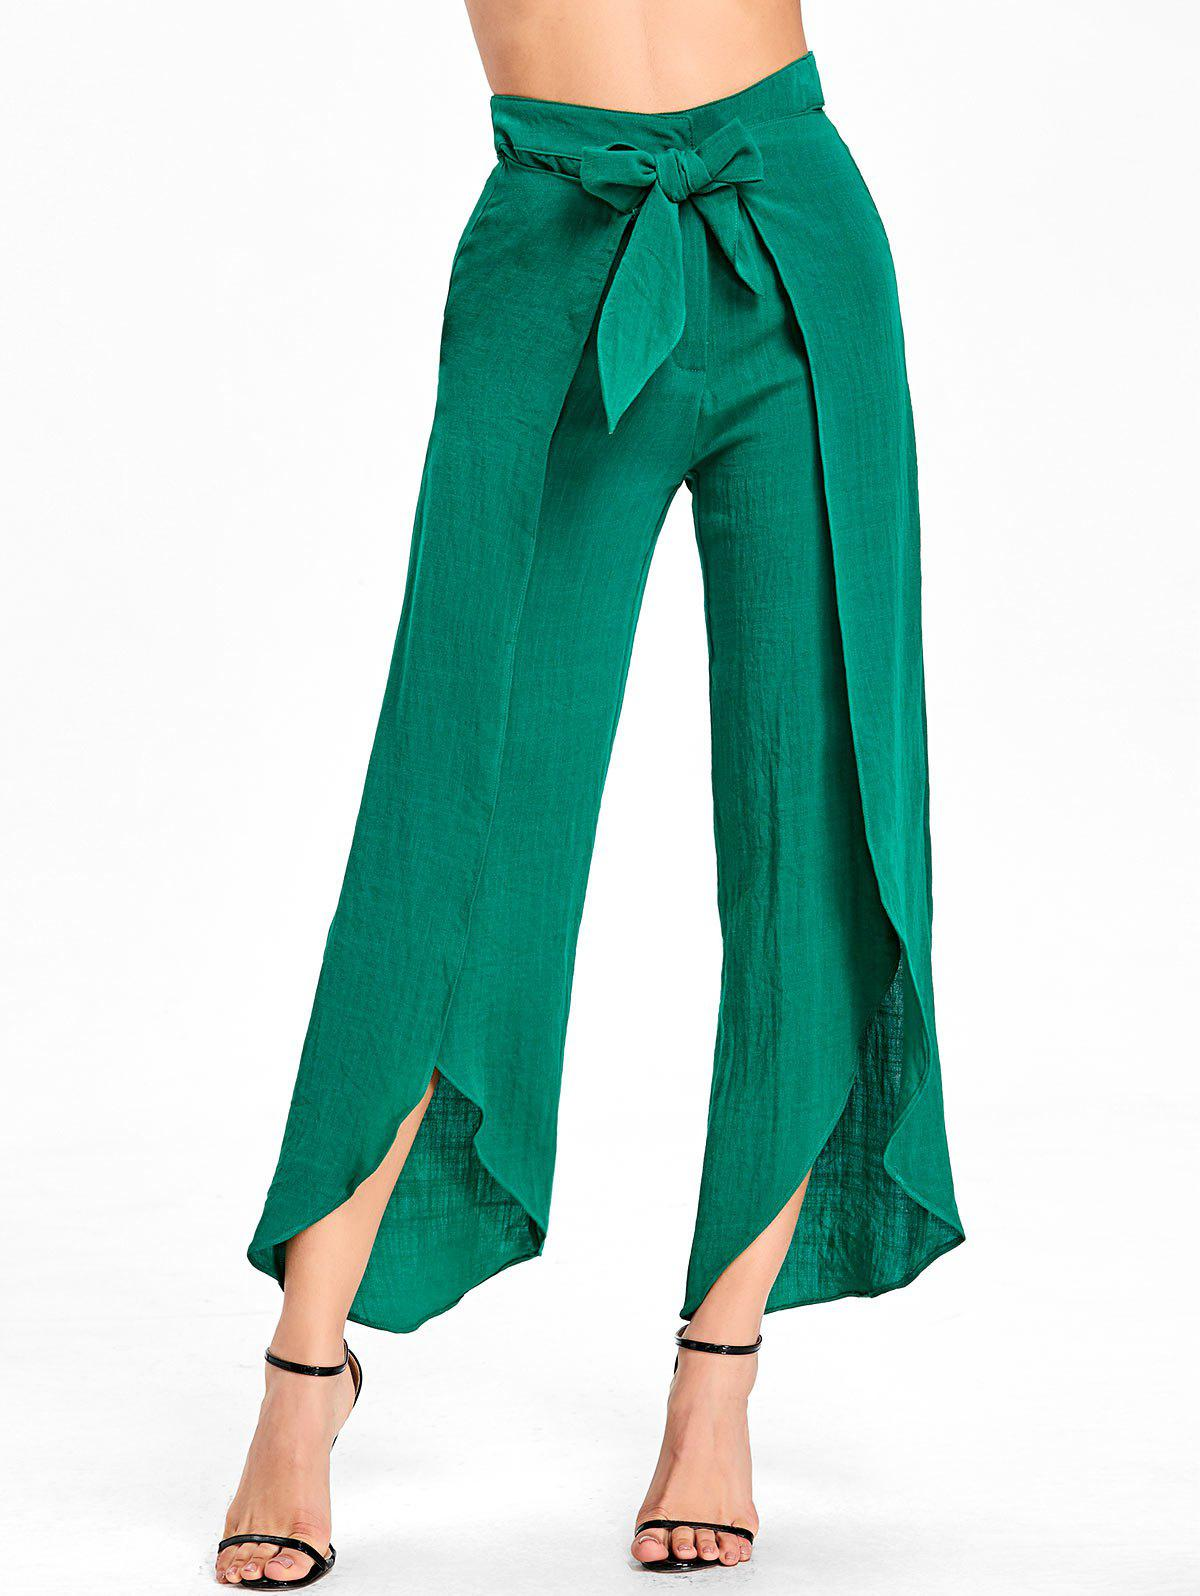 Trendy High Waist High Slit Wrap Pants